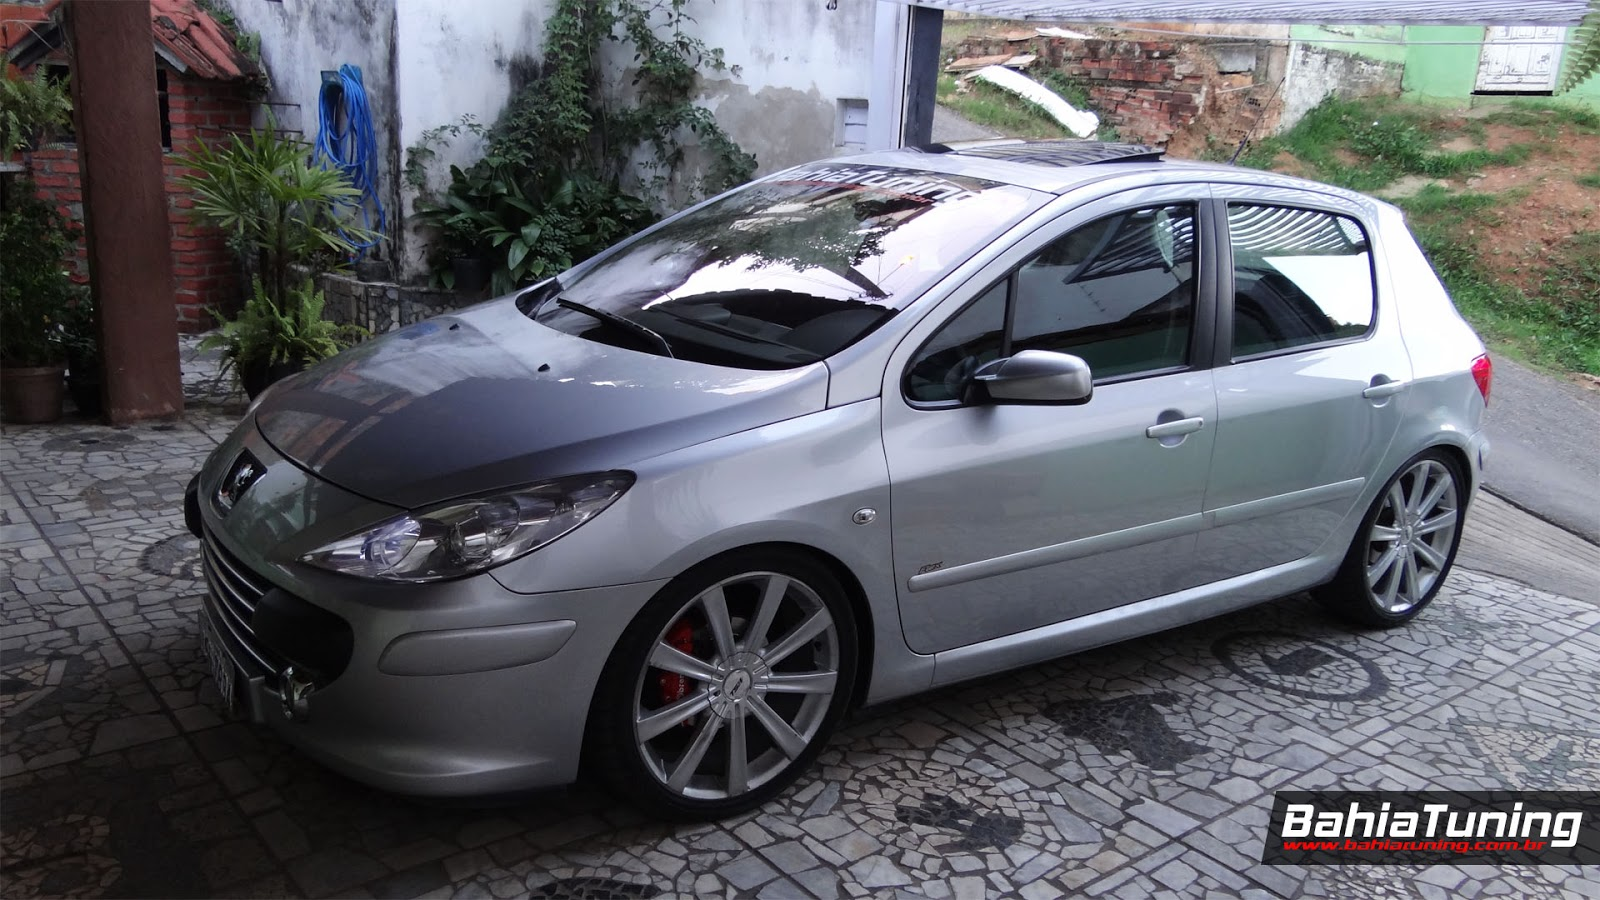 peugeot 307 19 bahia tuning. Black Bedroom Furniture Sets. Home Design Ideas